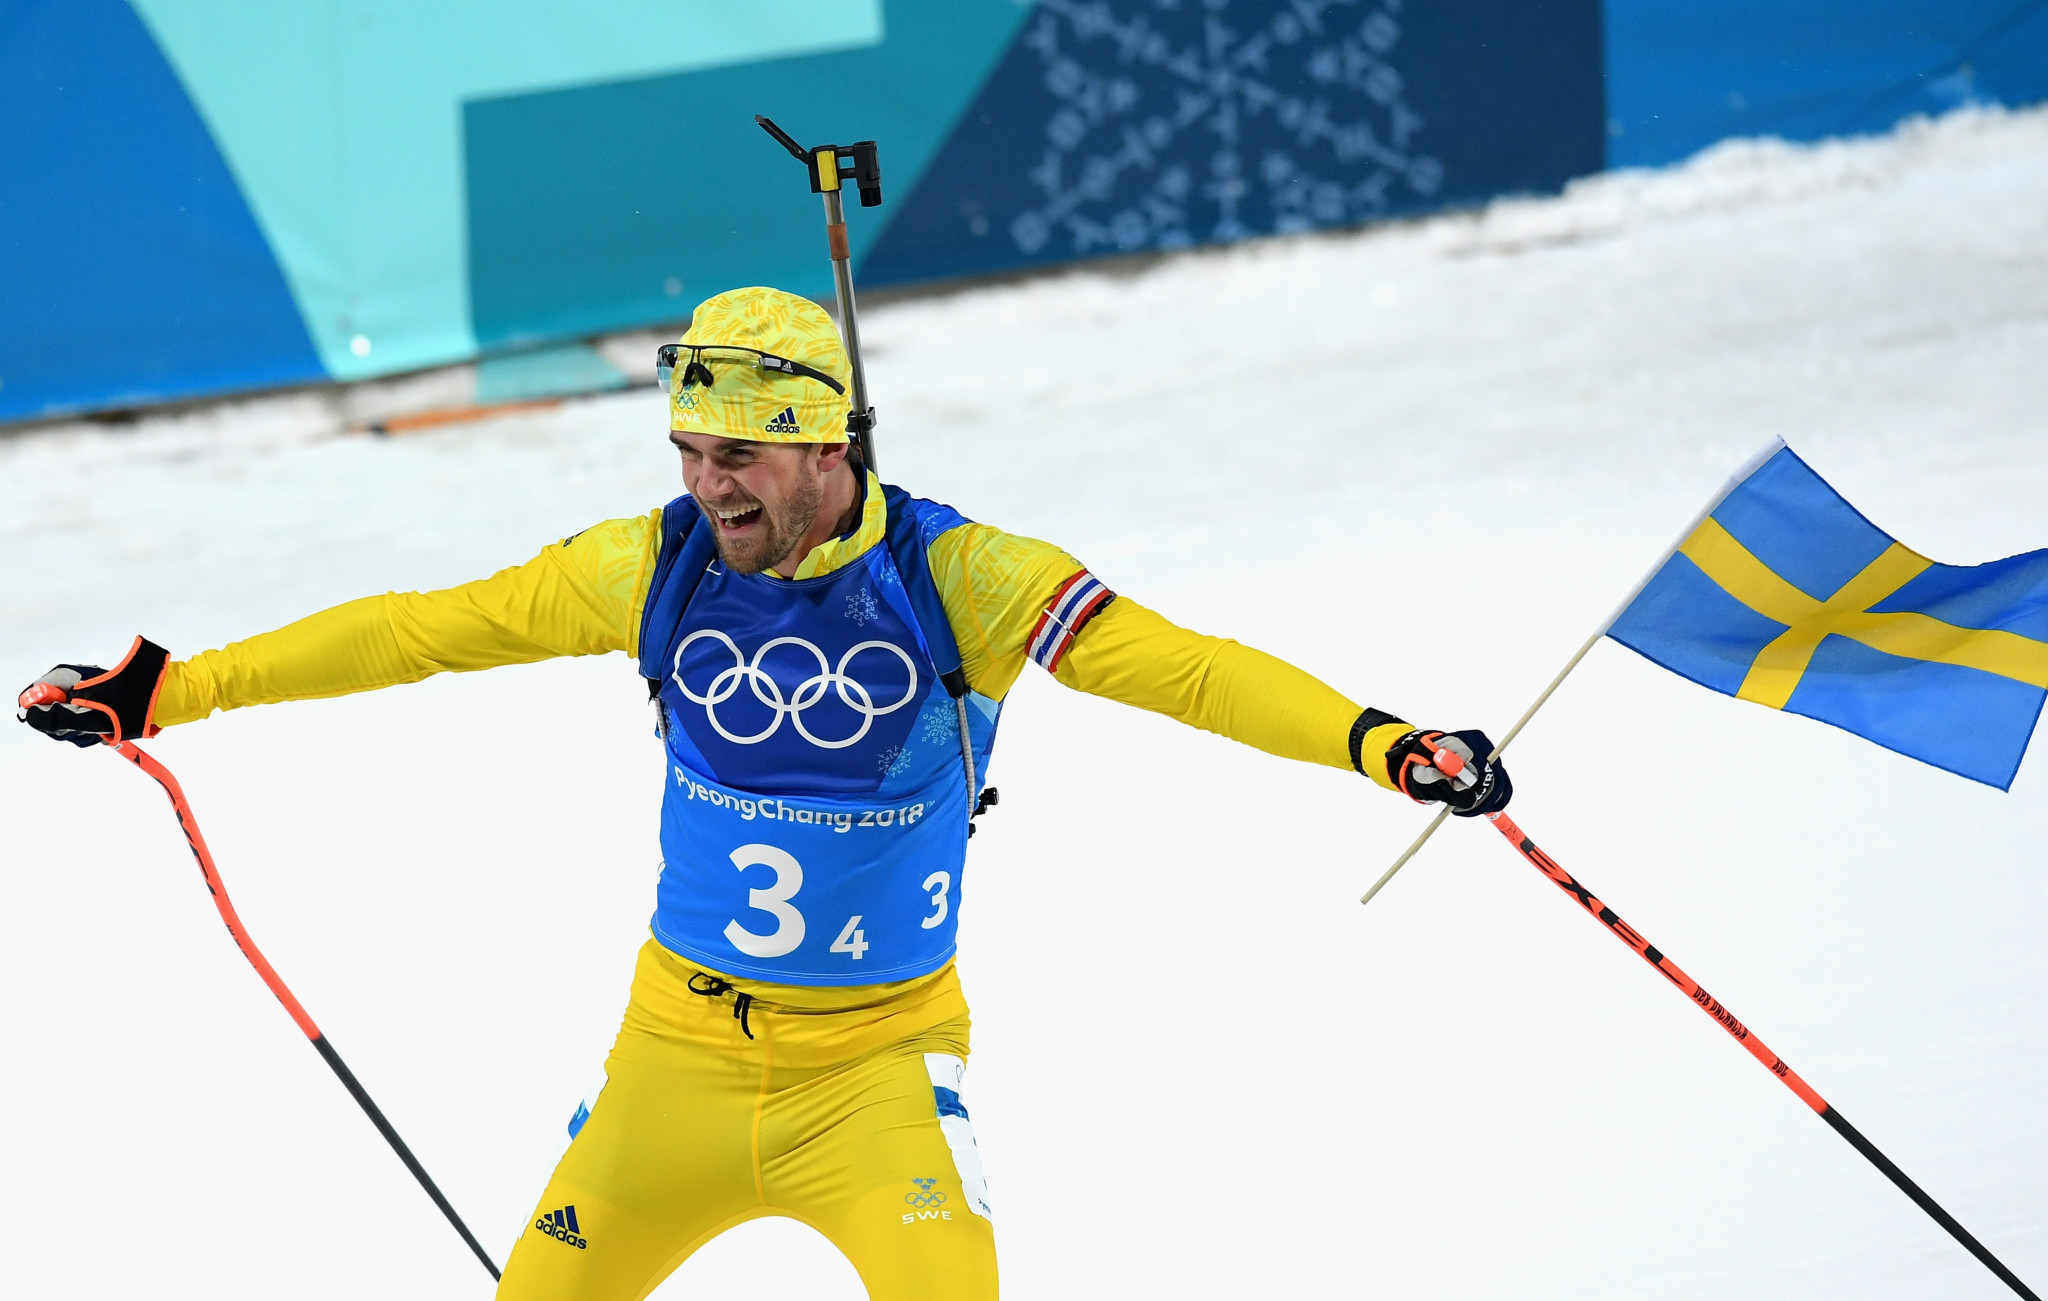 Fredrik Lindström anchored Sweden to a surprise victory in the men's 4x7.5 kilometres relay ©Getty Images